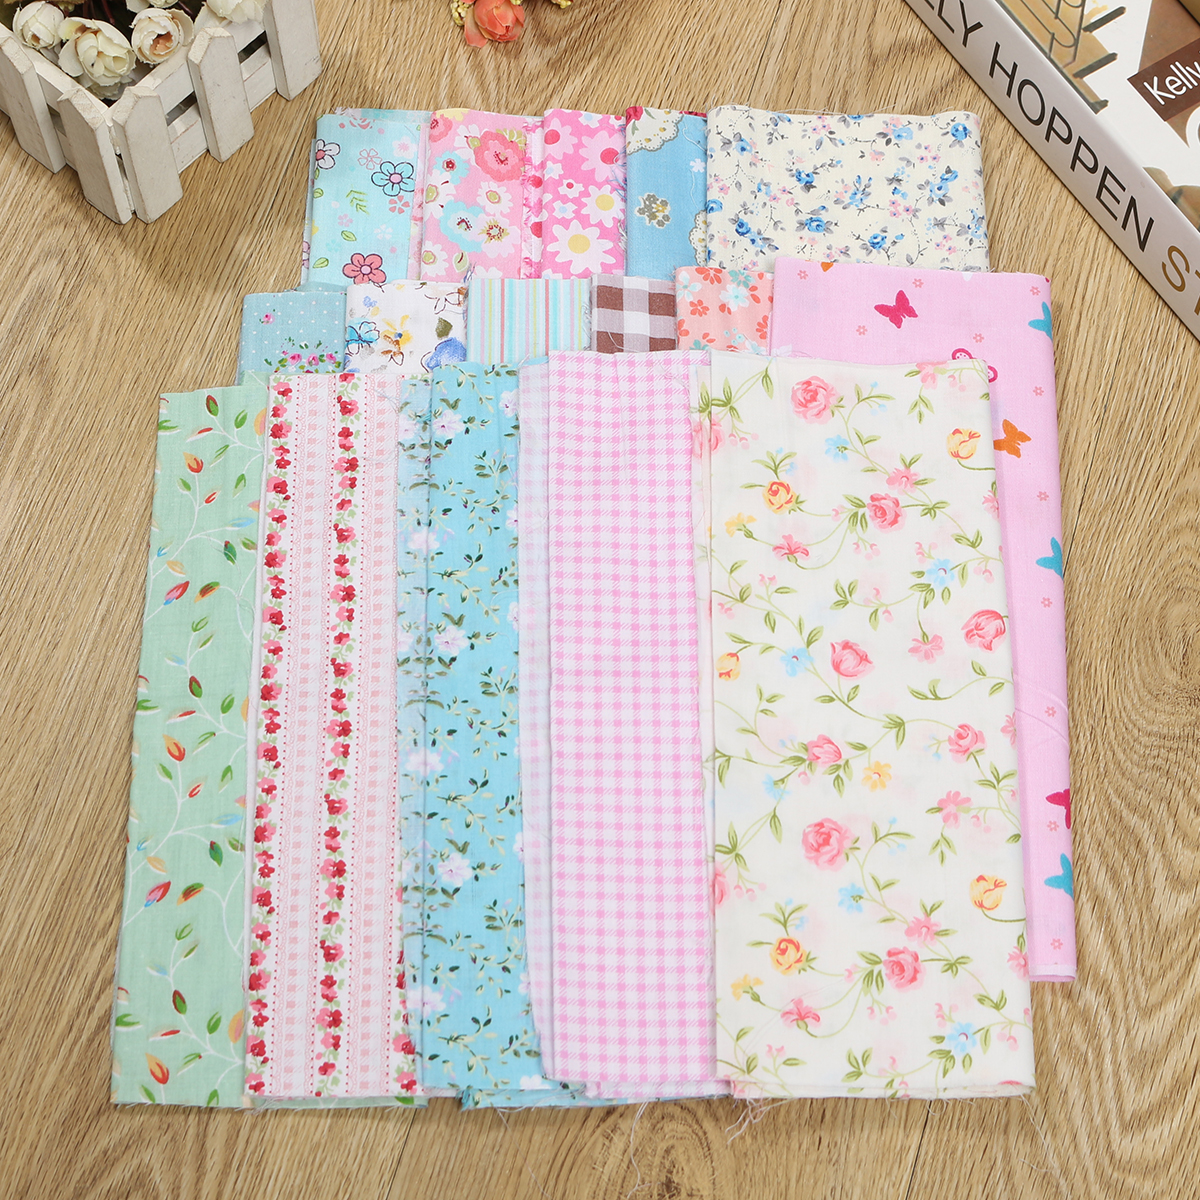 POLY COTTON FABRIC BUNDLES.FAT QUARTERS OR 10 INCH.FUNKY.MULTI CRAFTS.SEWING.